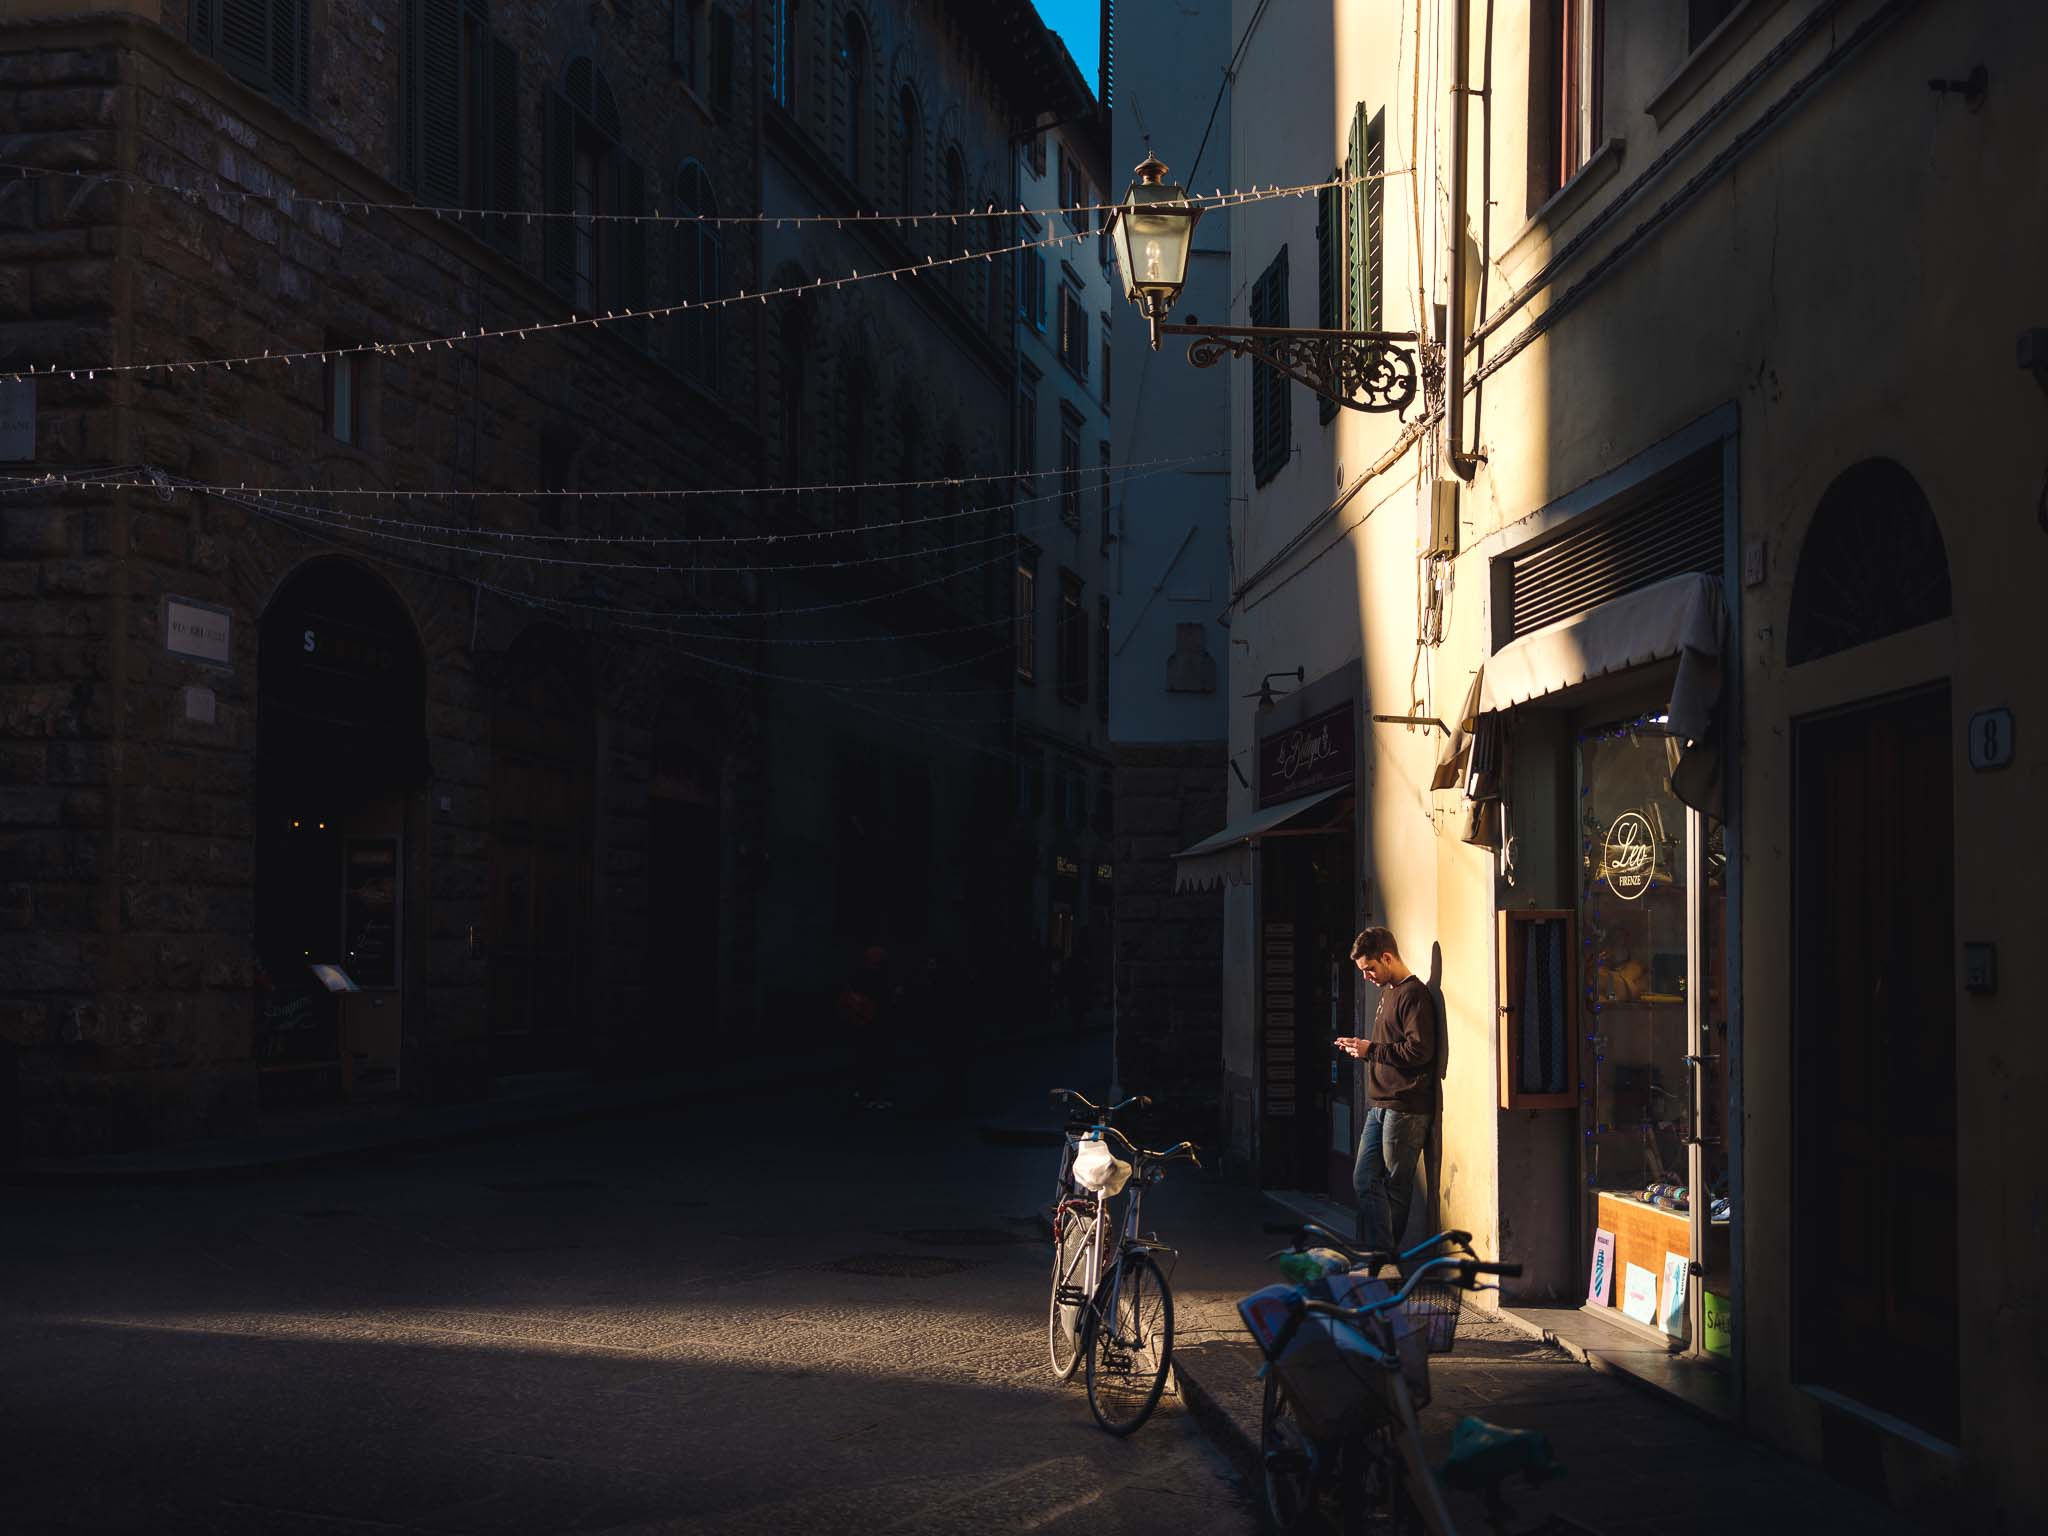 Fujifilm GFX 50R first contact in Florence